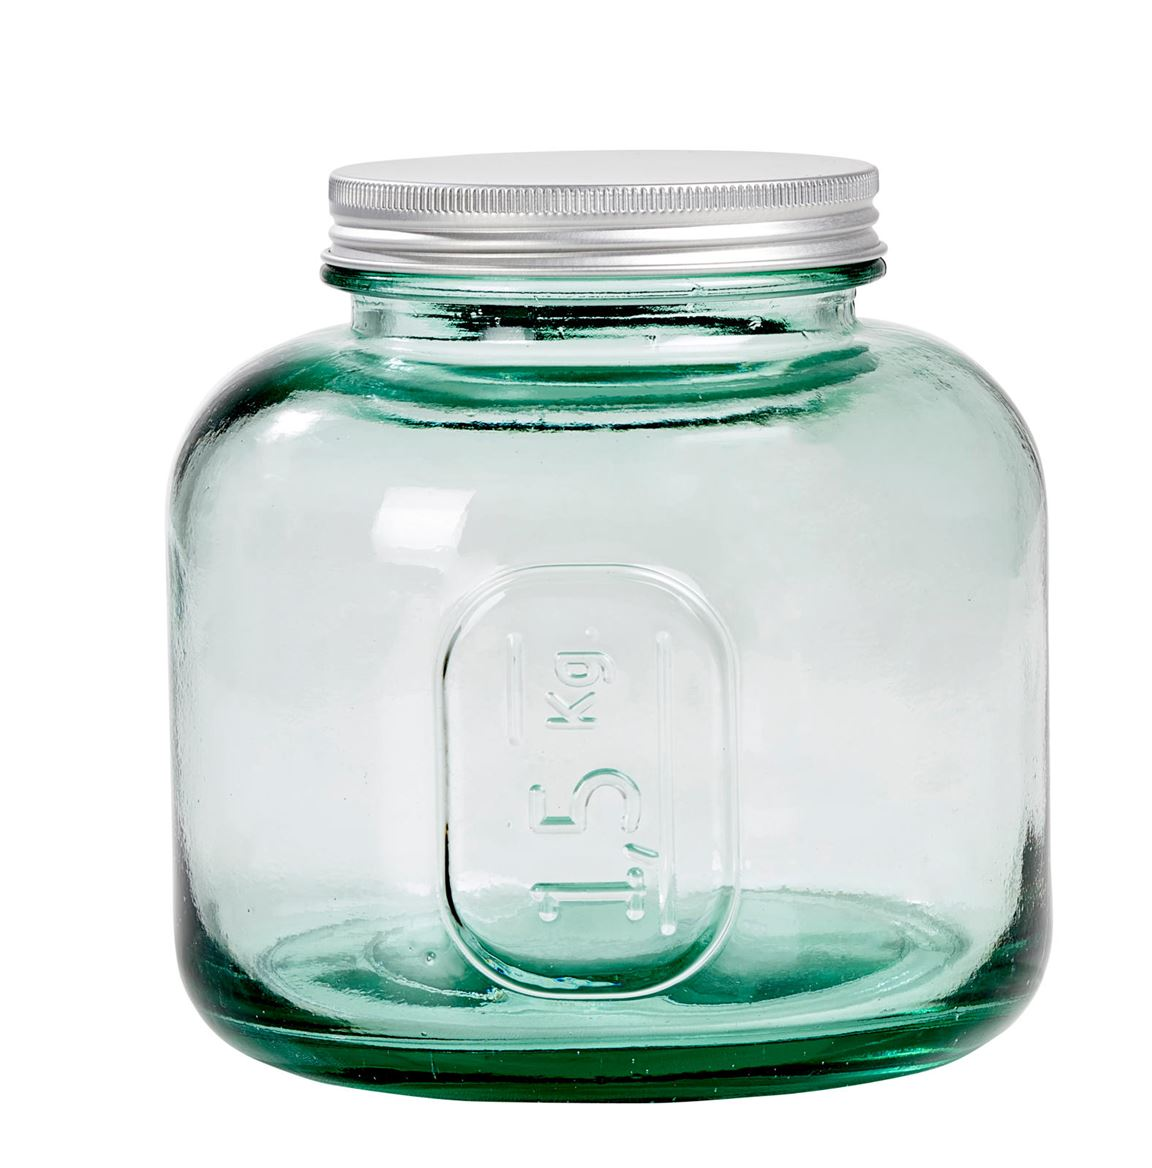 CAPACITY Bocal transparent H 15 cm; Ø 15 cm_capacity-bocal-transparent-h-15-cm;-ø-15-cm